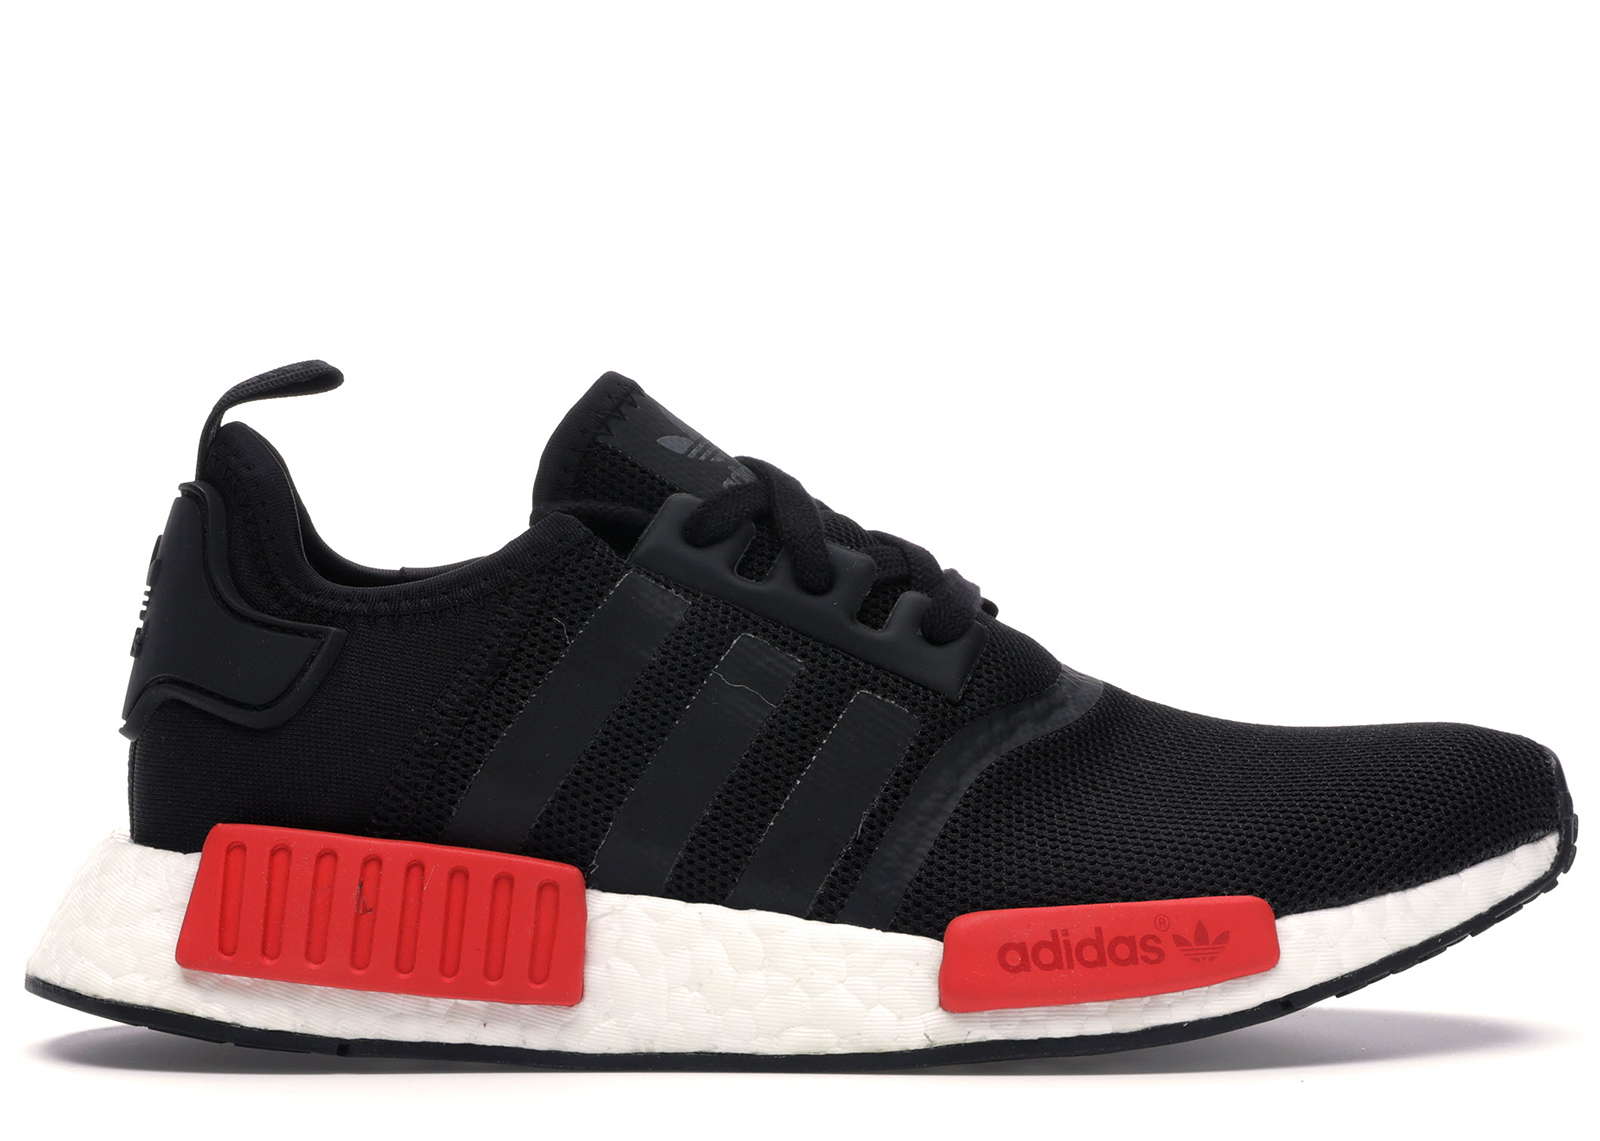 NMD_R1 'Active Red Black'